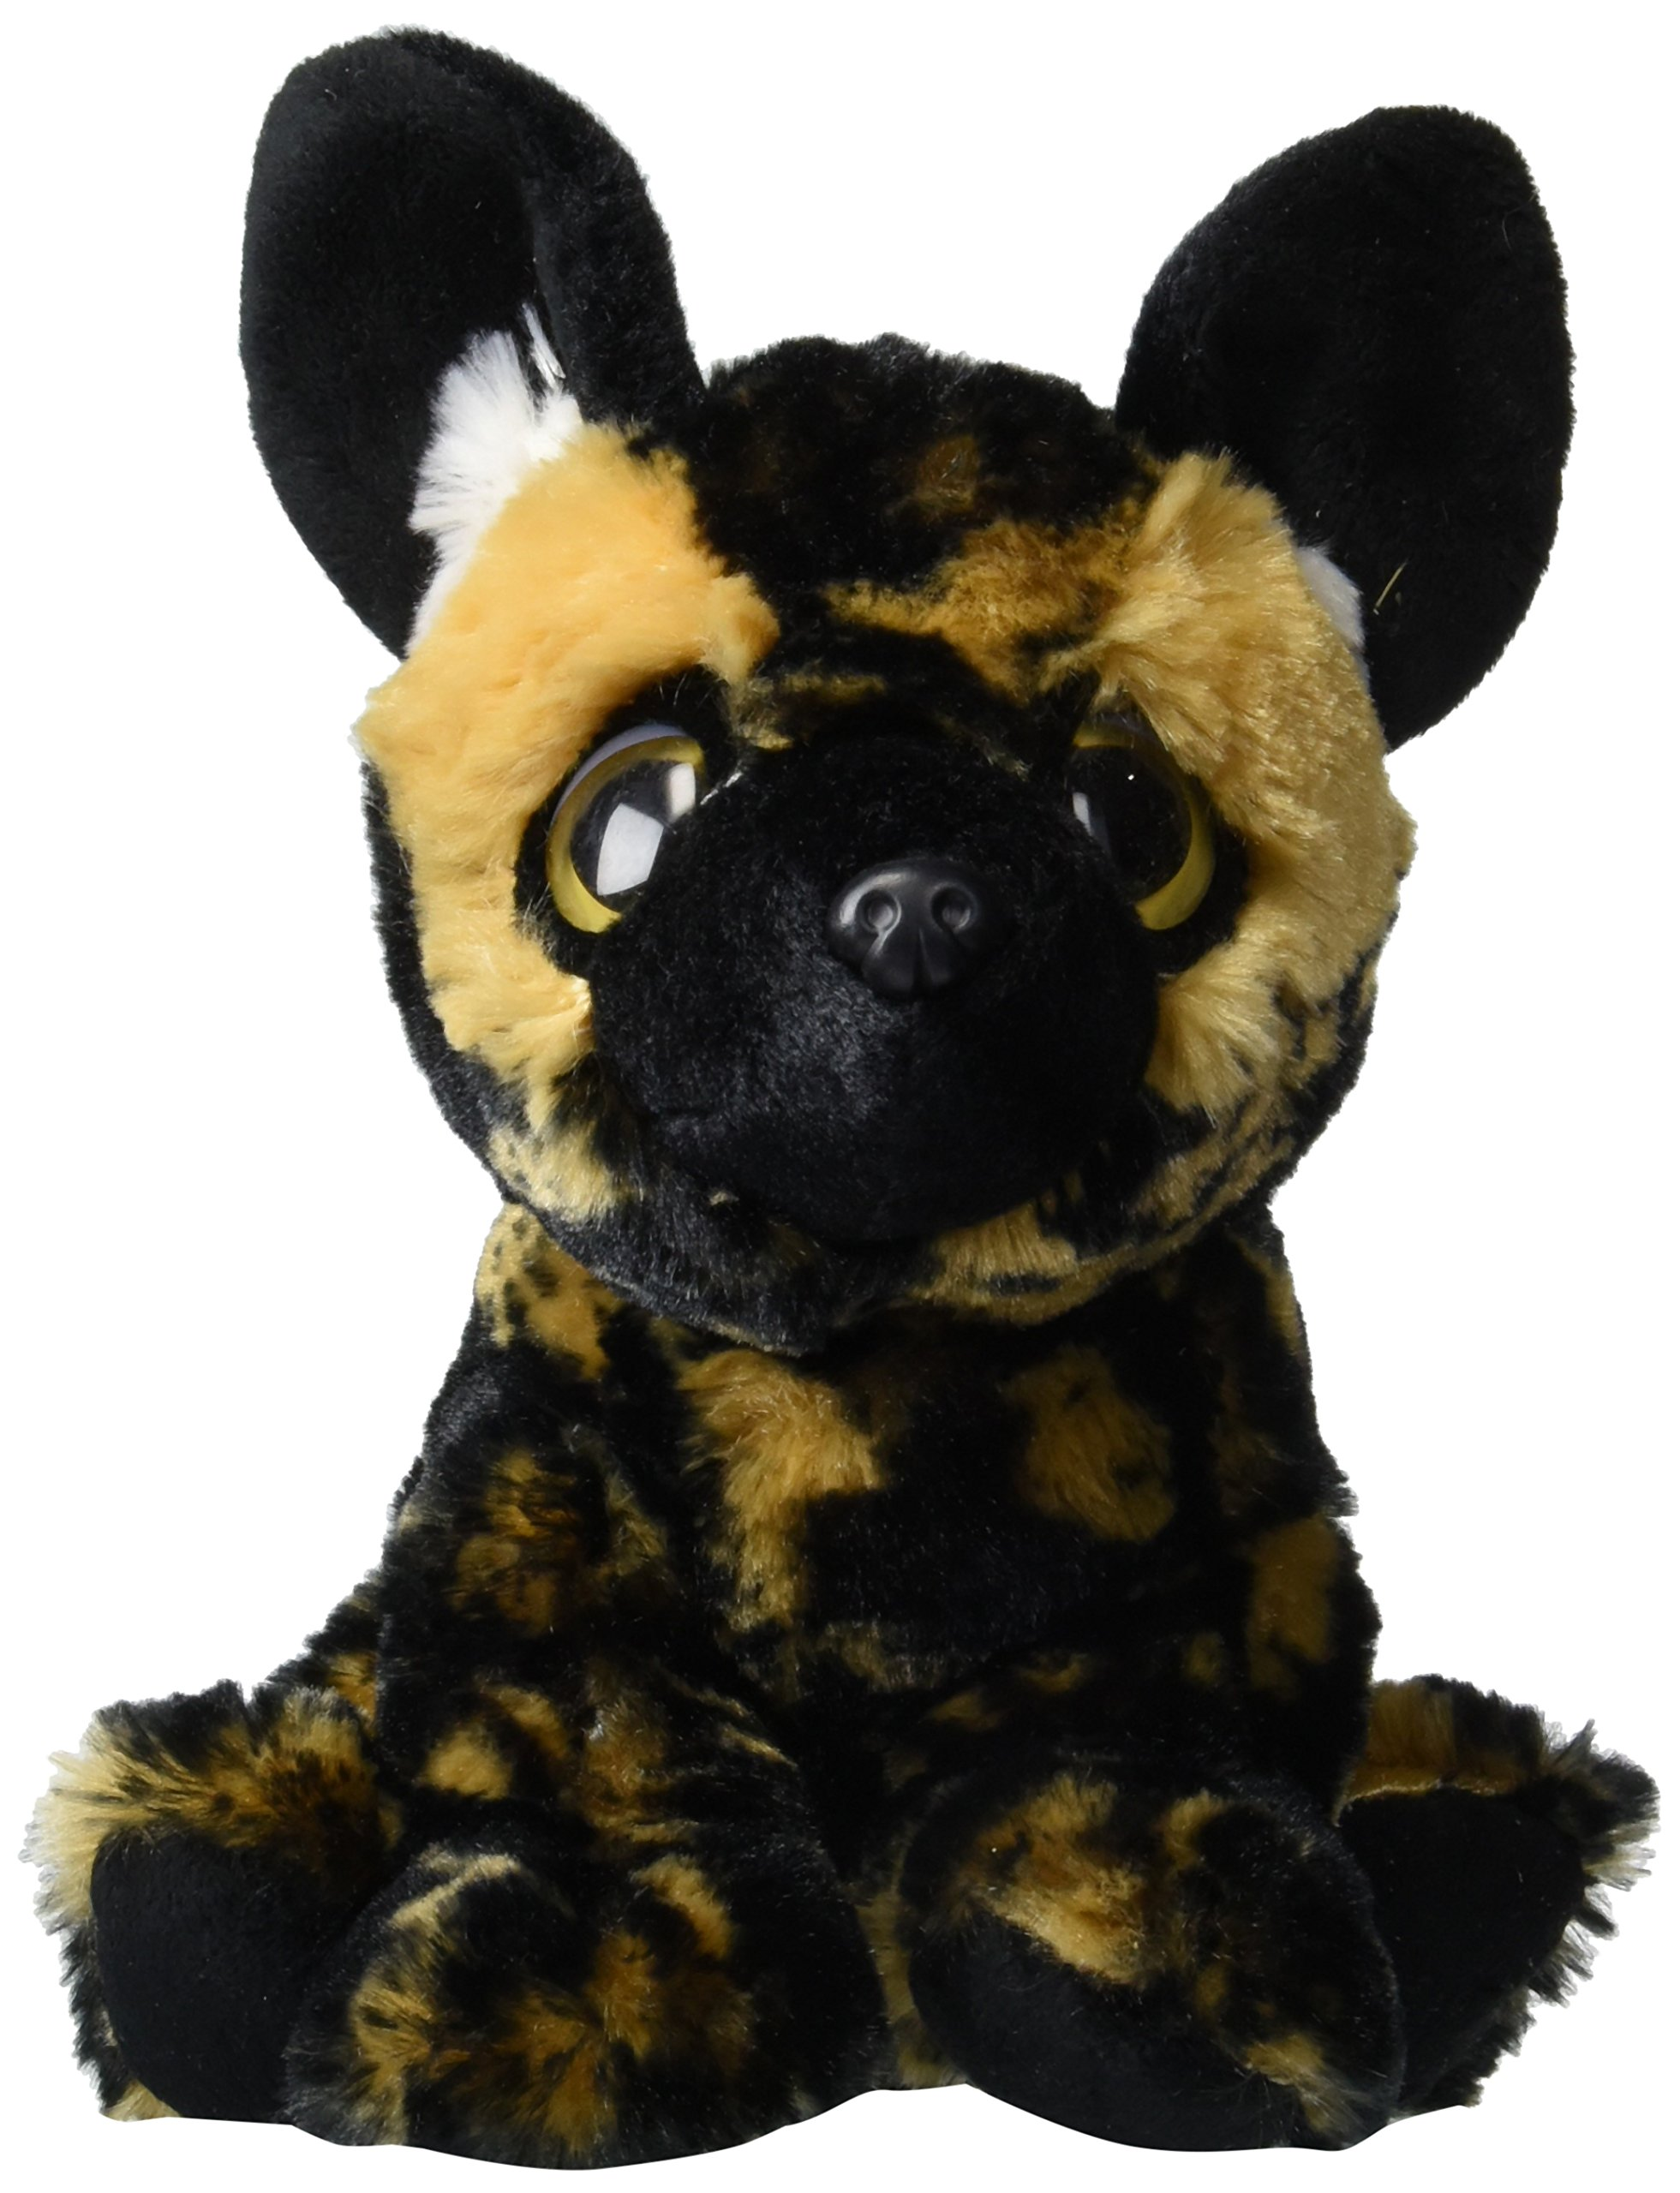 Wishpets Stuffed Animal - Soft Plush Toy for Kids - 9'' Big Eyes Wild Dog